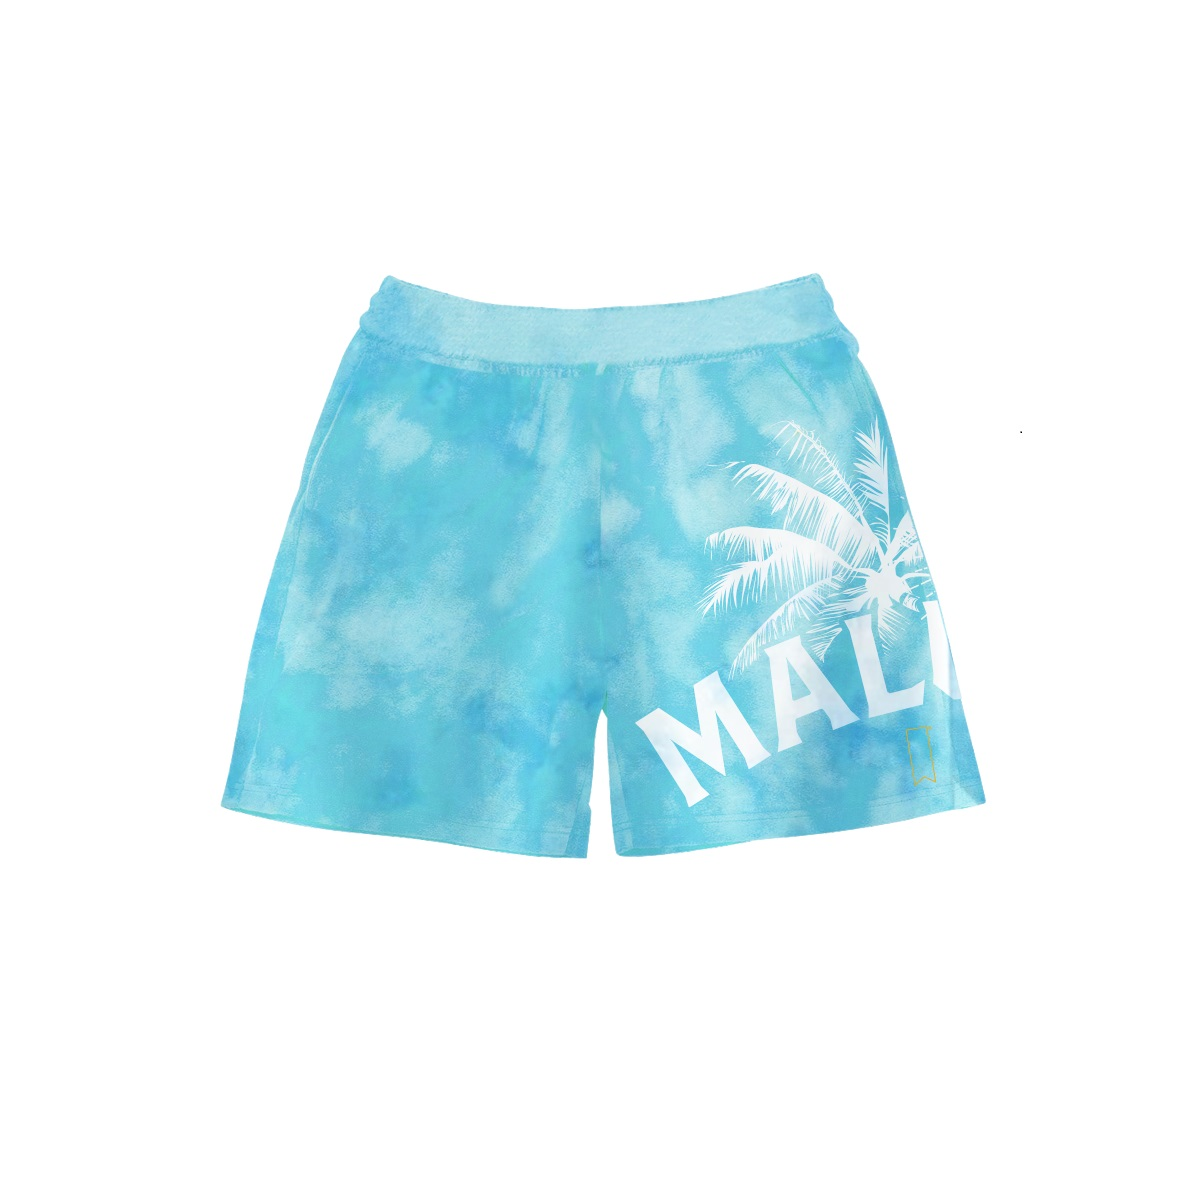 Dyed Sky Blue Shorts